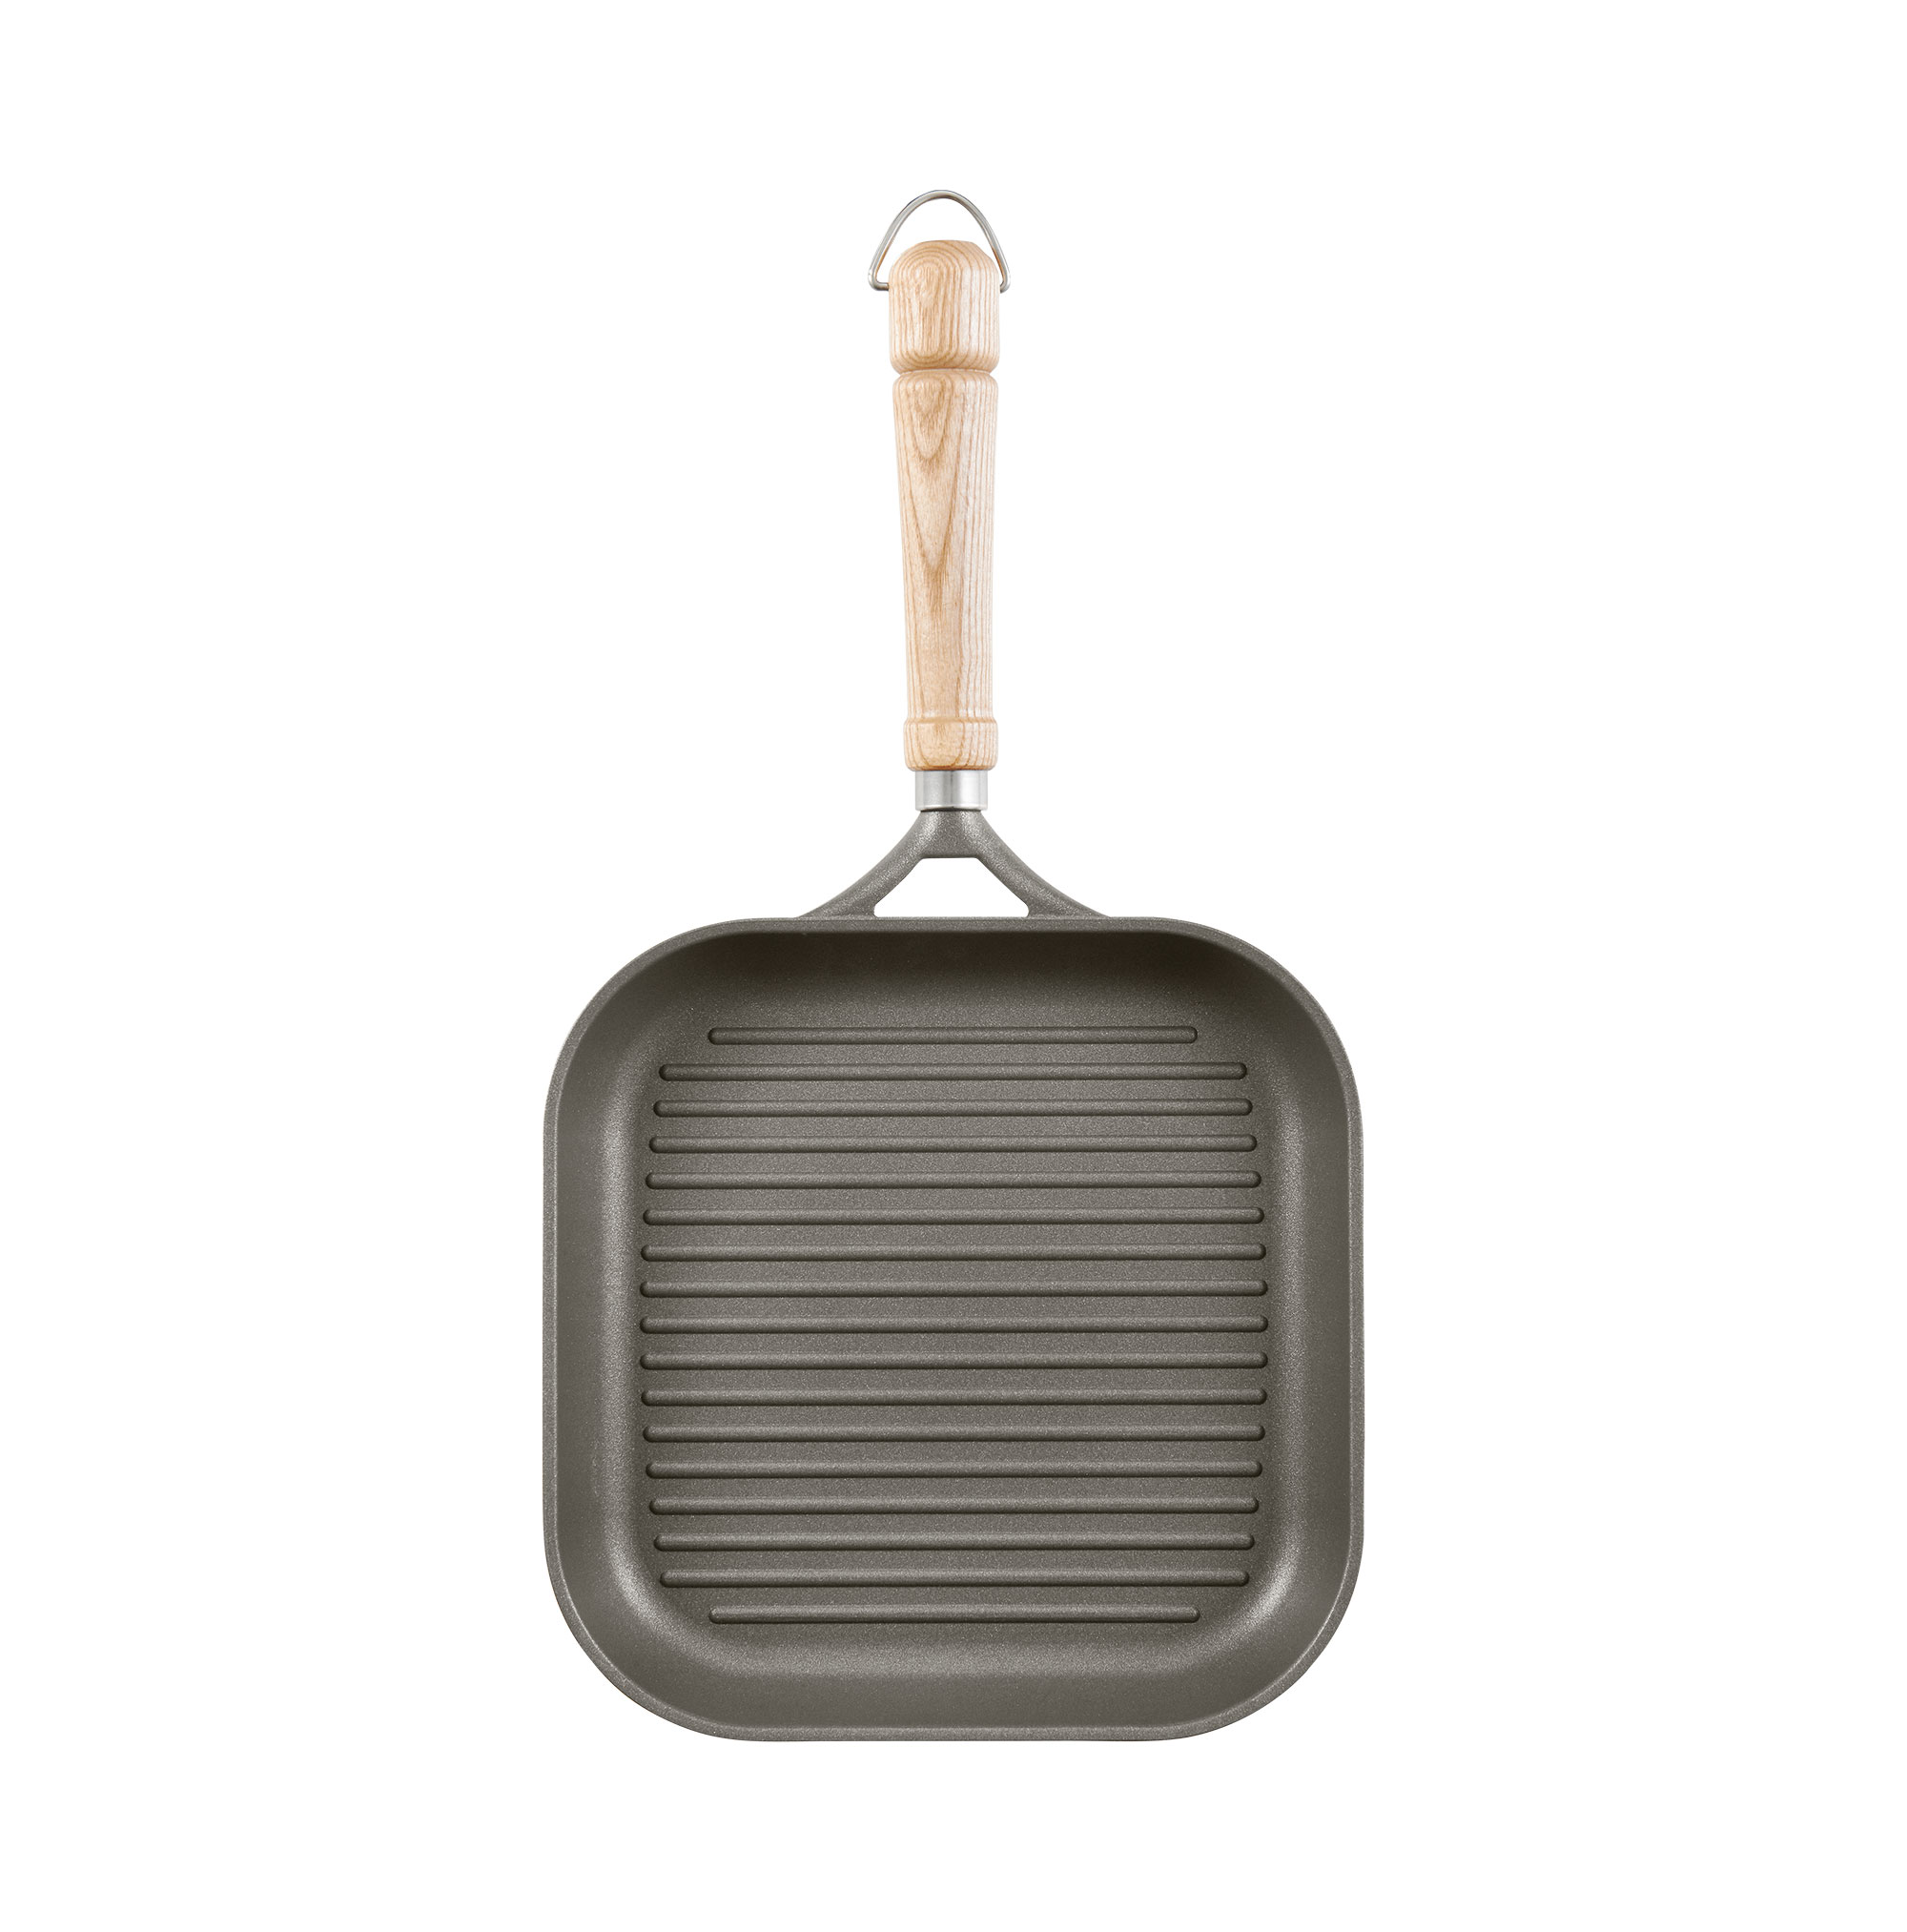 Berndes Grillpfanne Bonanza Induction 24 cm